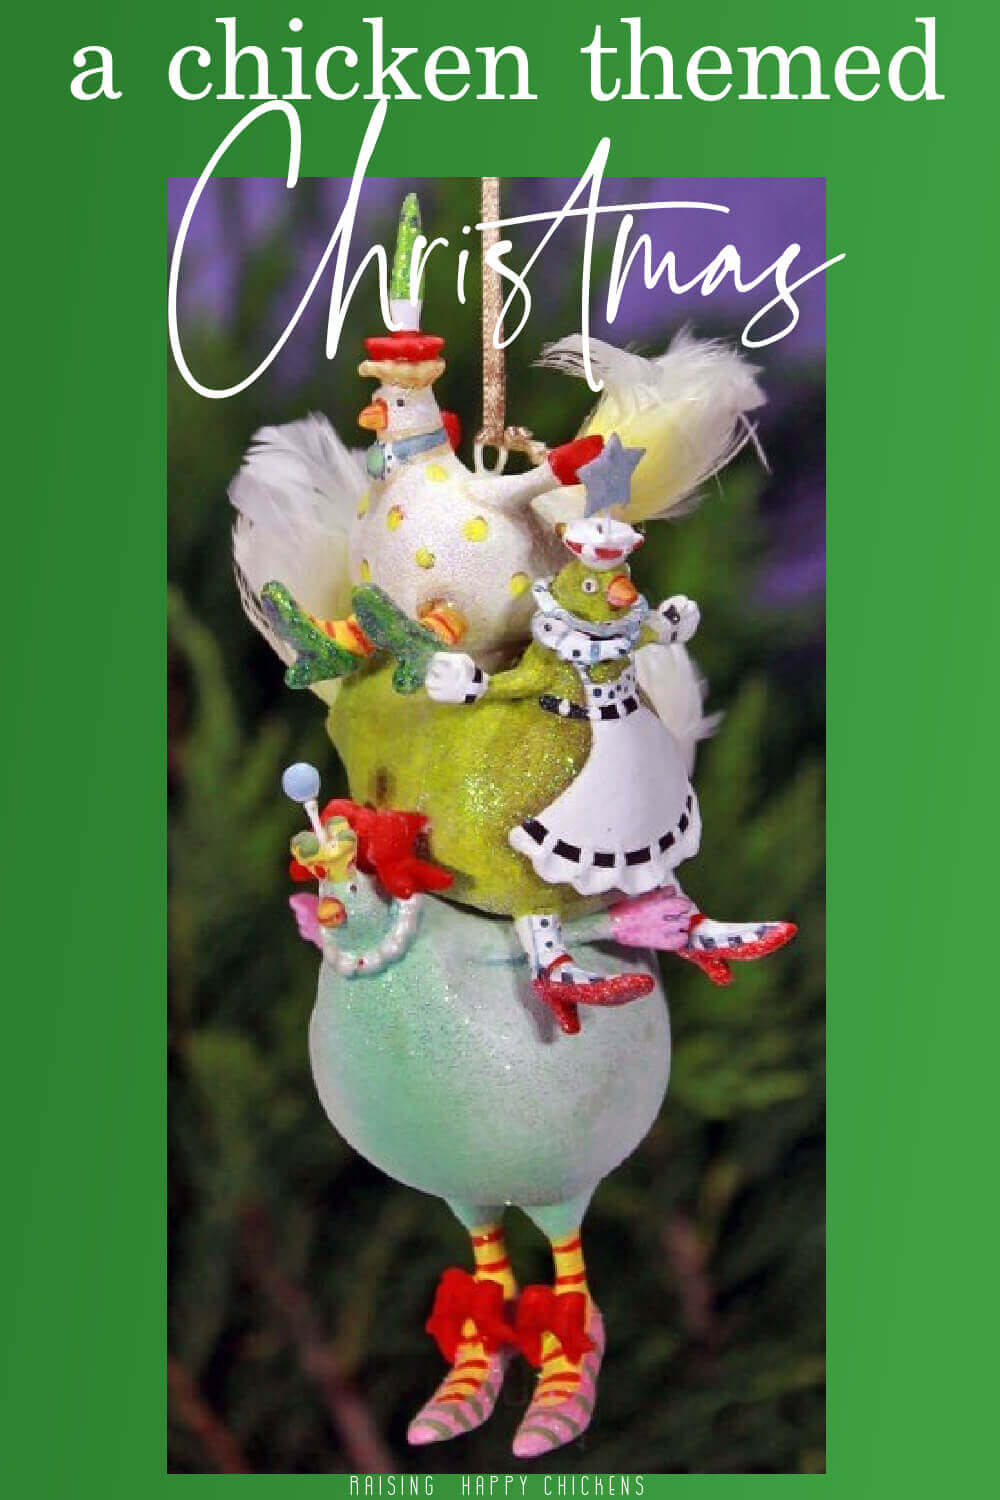 Looking for a chicken themed Christmas tree ornament for yourself or to give as a gift? #backyardchickens #christmasgiftideas #backyardchickenlove